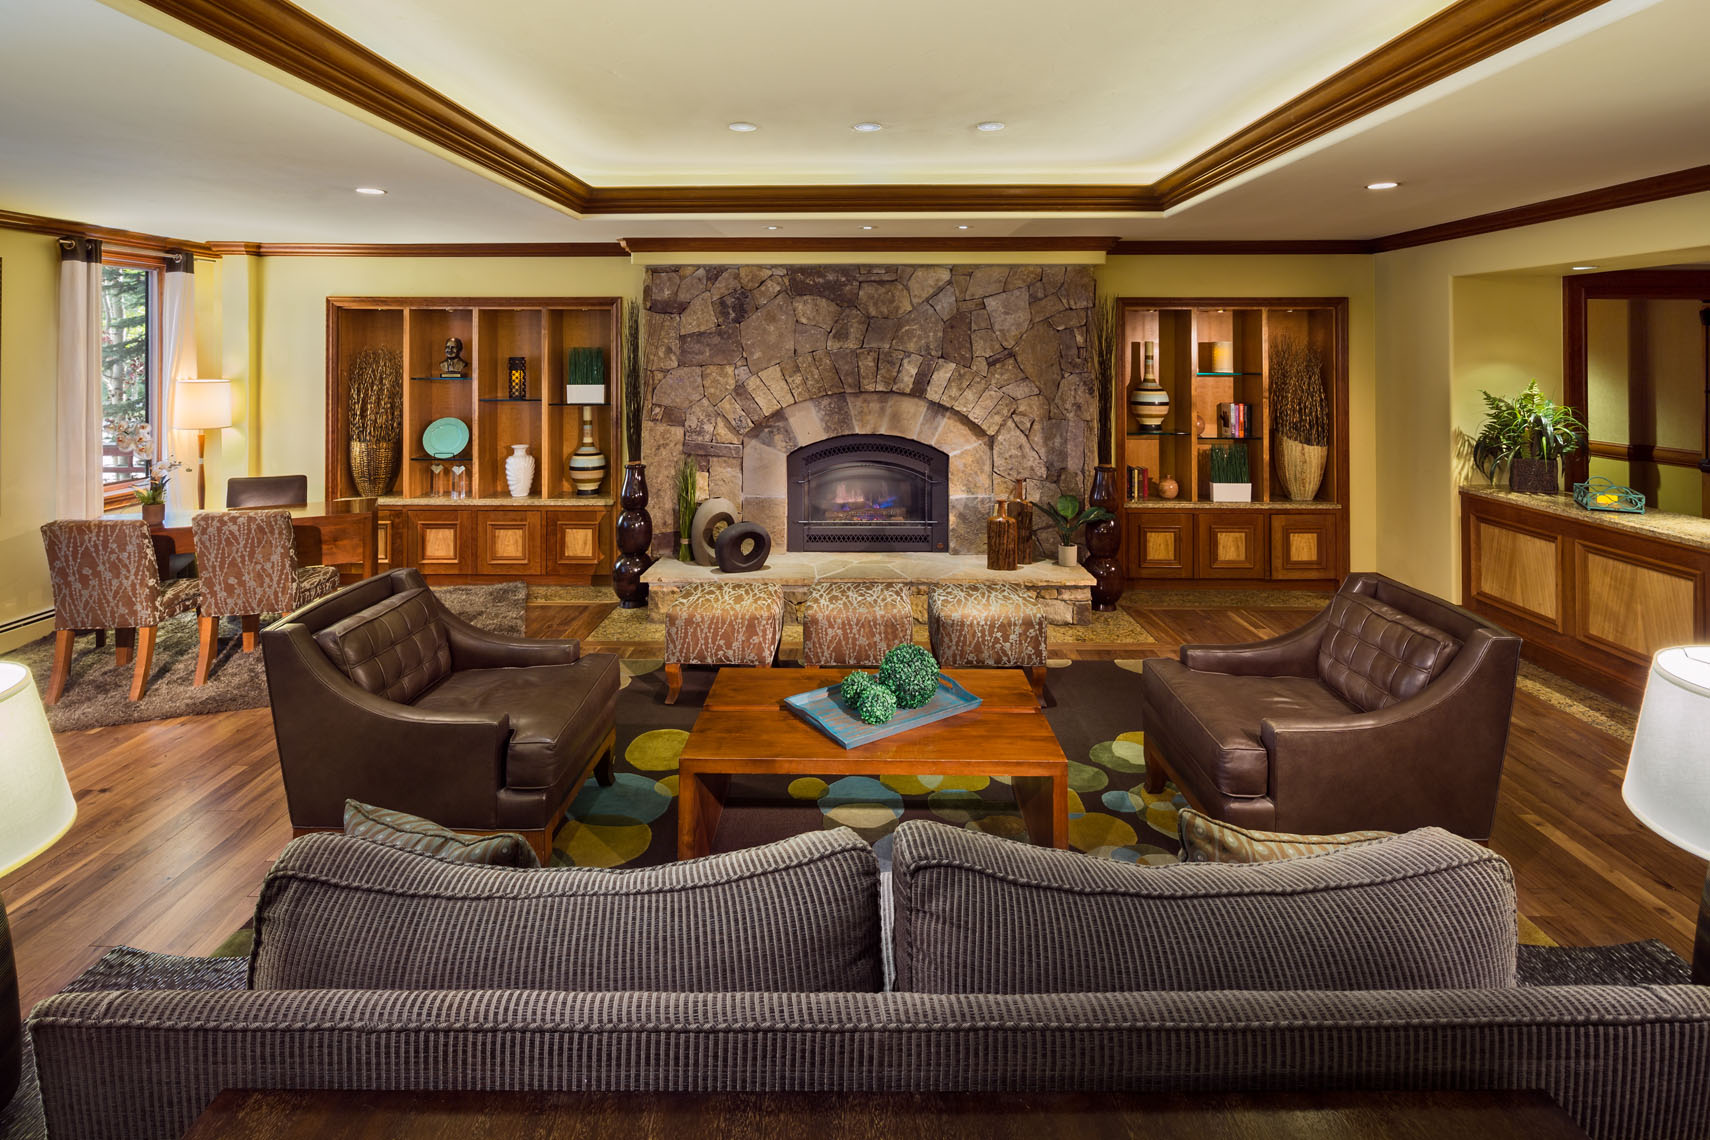 Interior photograph of a luxury hotel resort in Breckenridge Colorado based architectural hotel and resort photographer Richard Steinberger